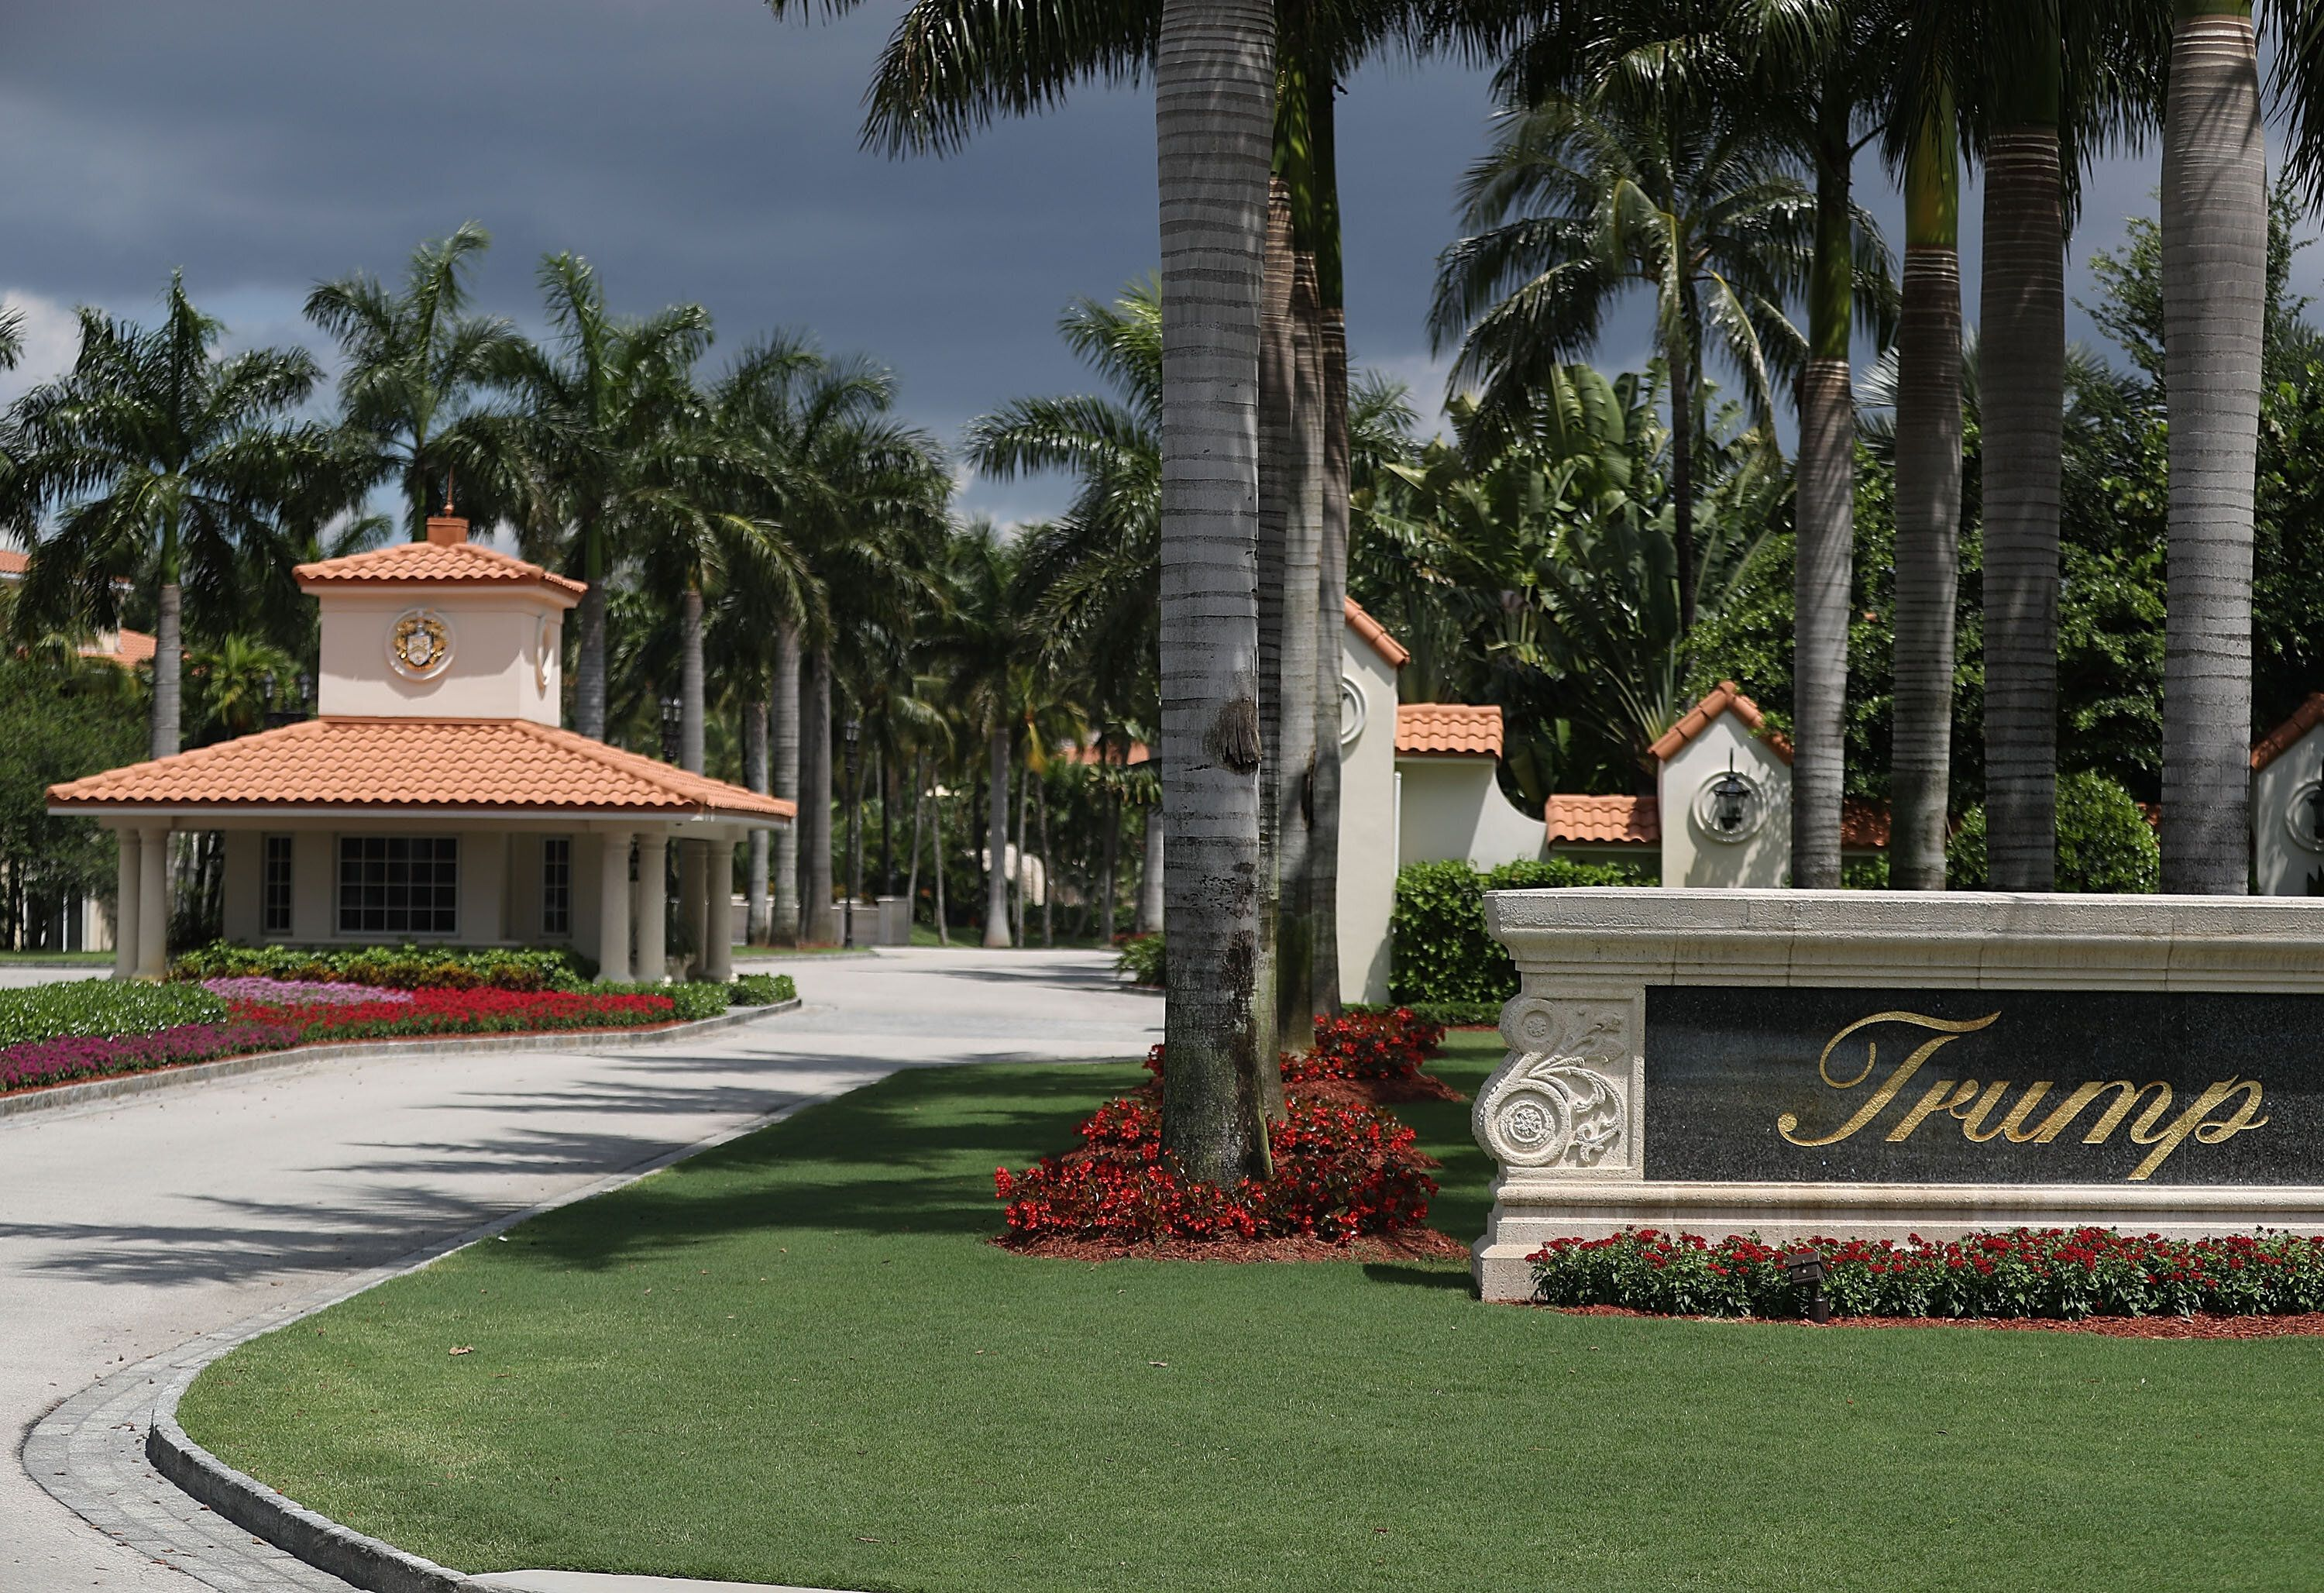 The front entrance to the Trump National Doral, photgraphed on June 1, 2016.